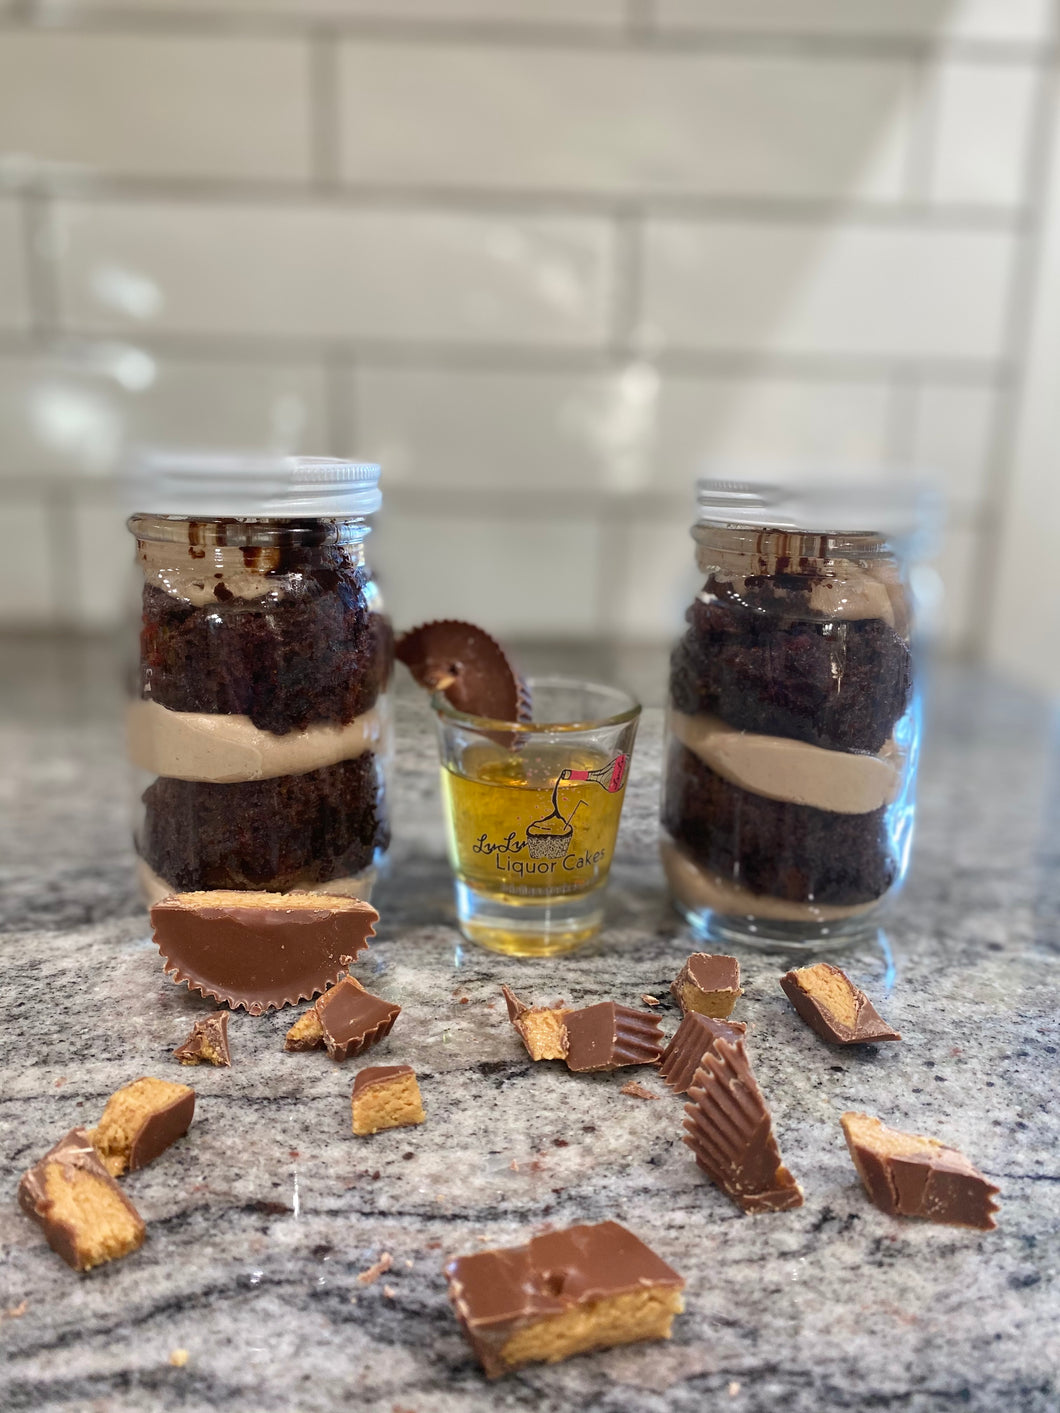 Chocolate Peanut Butter Liquor Cake Jar